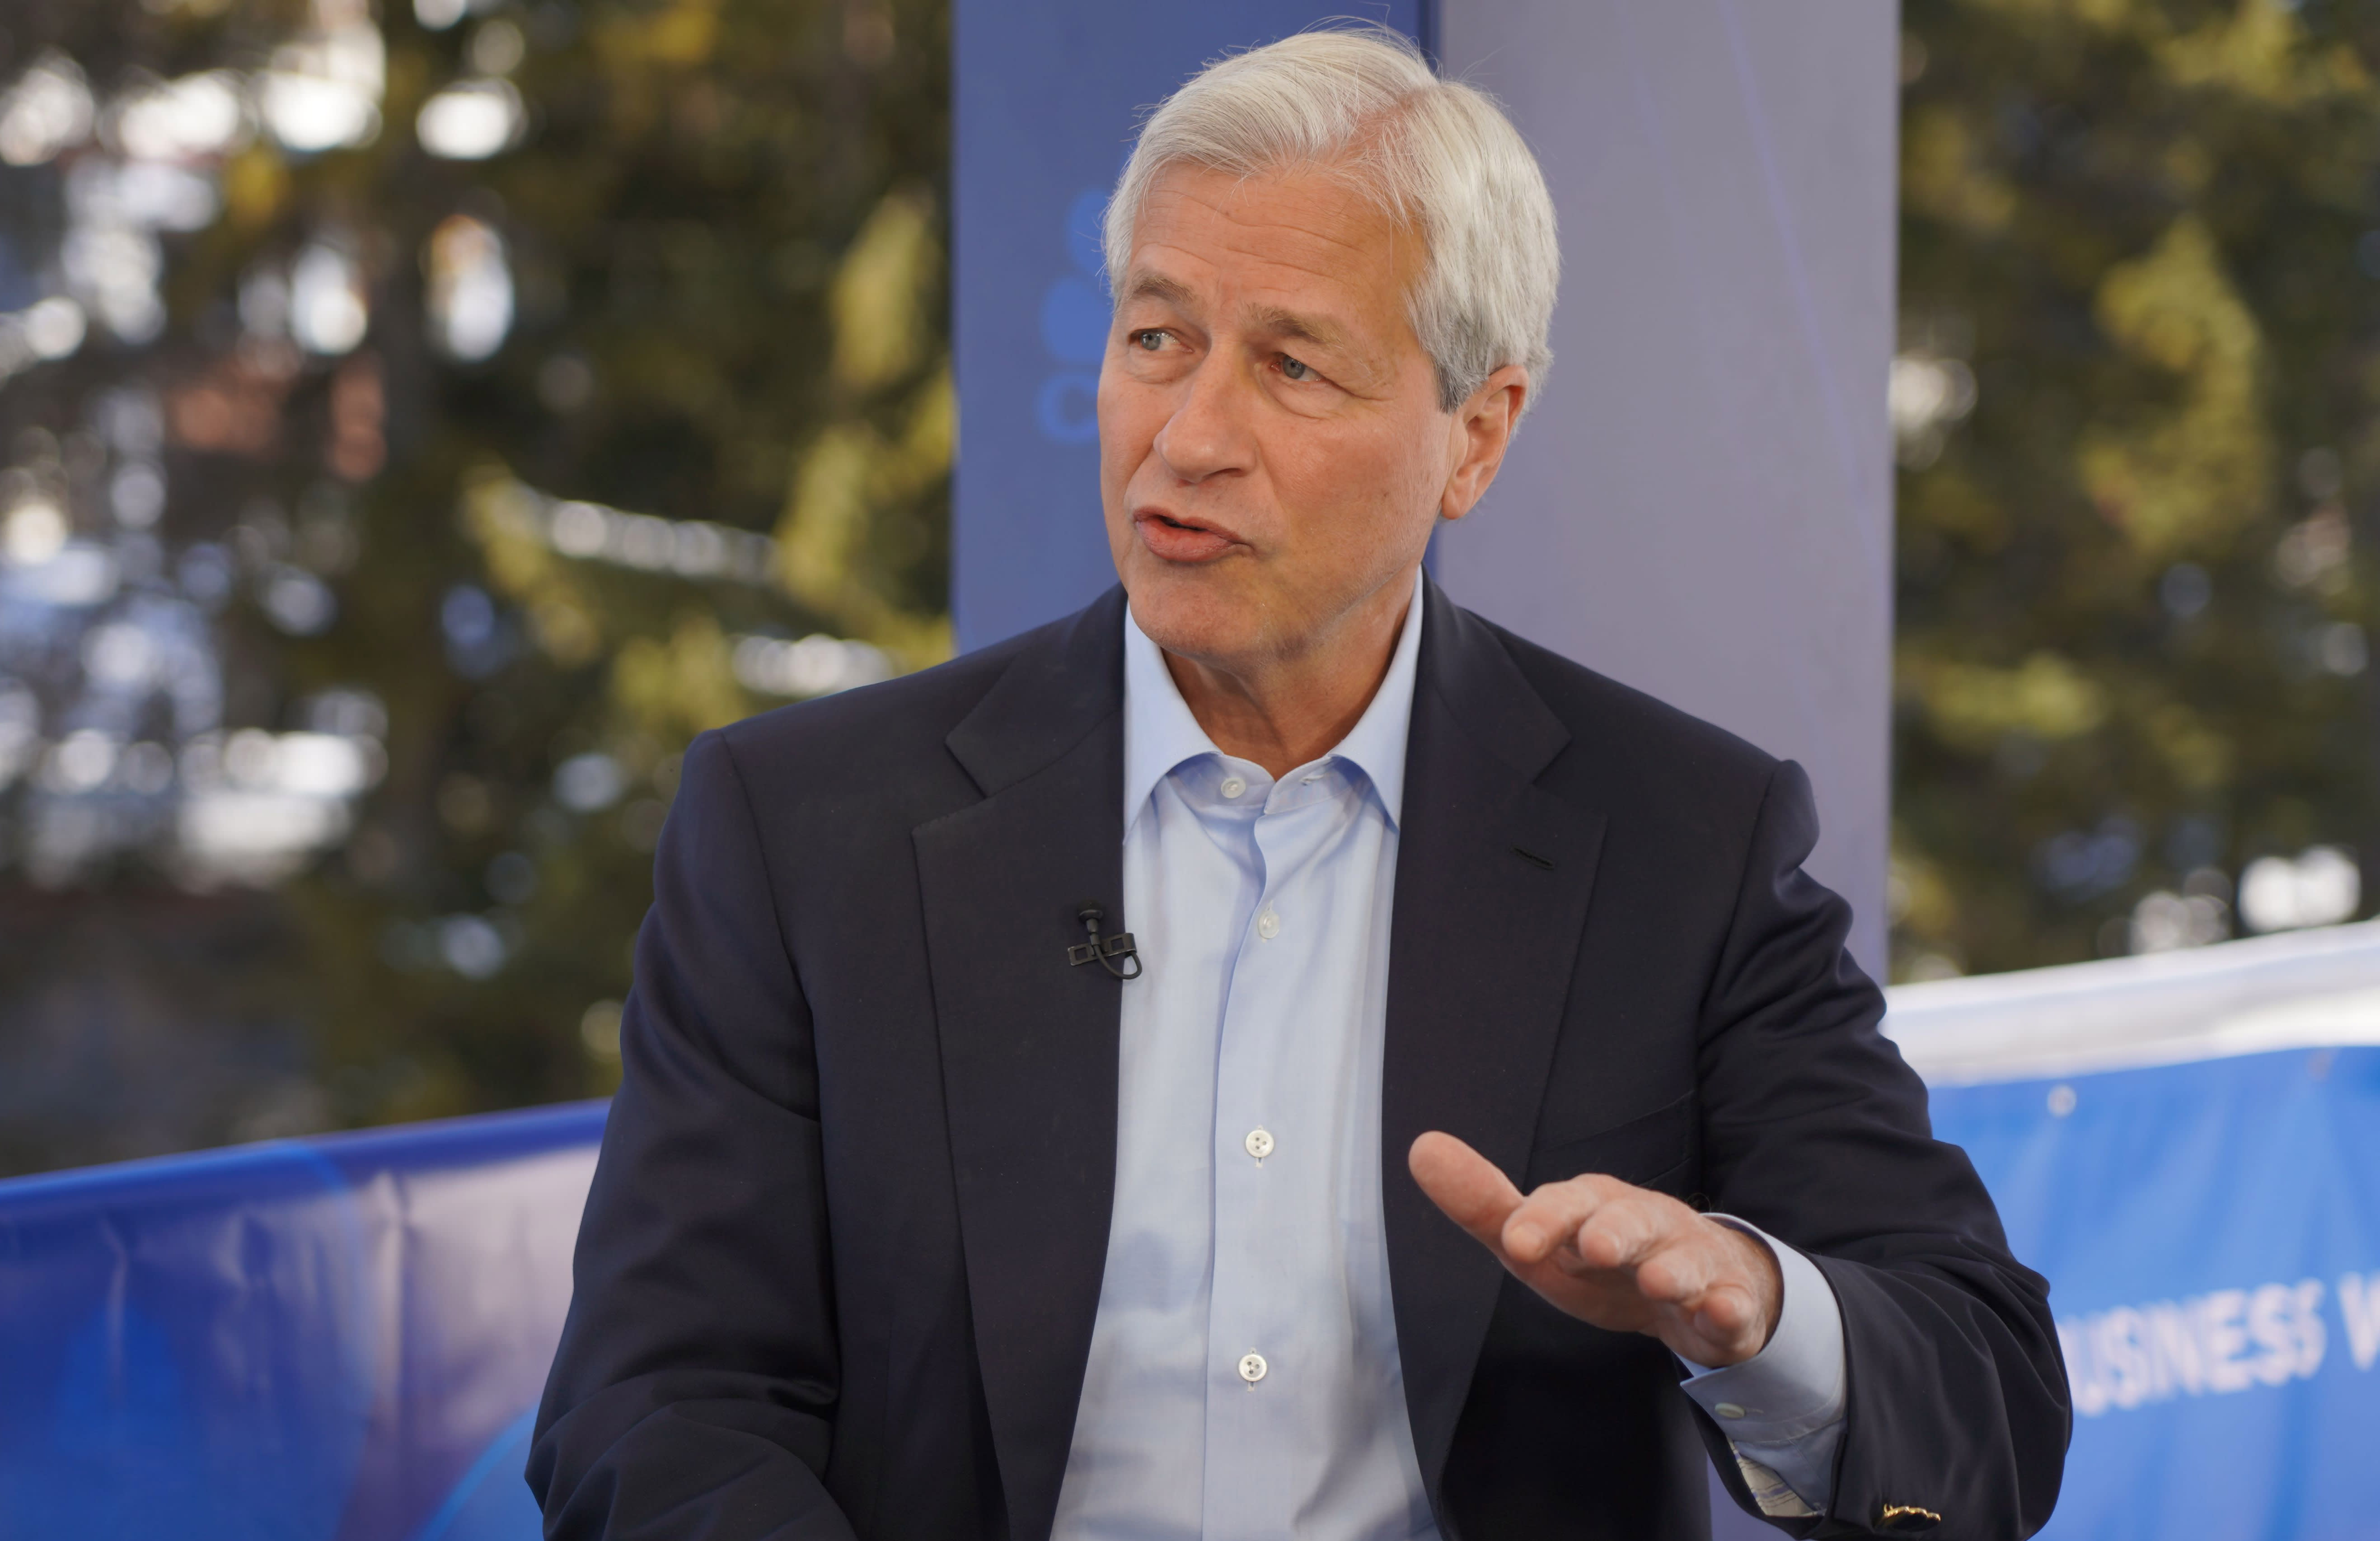 Jamie Dimon says his one big worry is negative interest rates